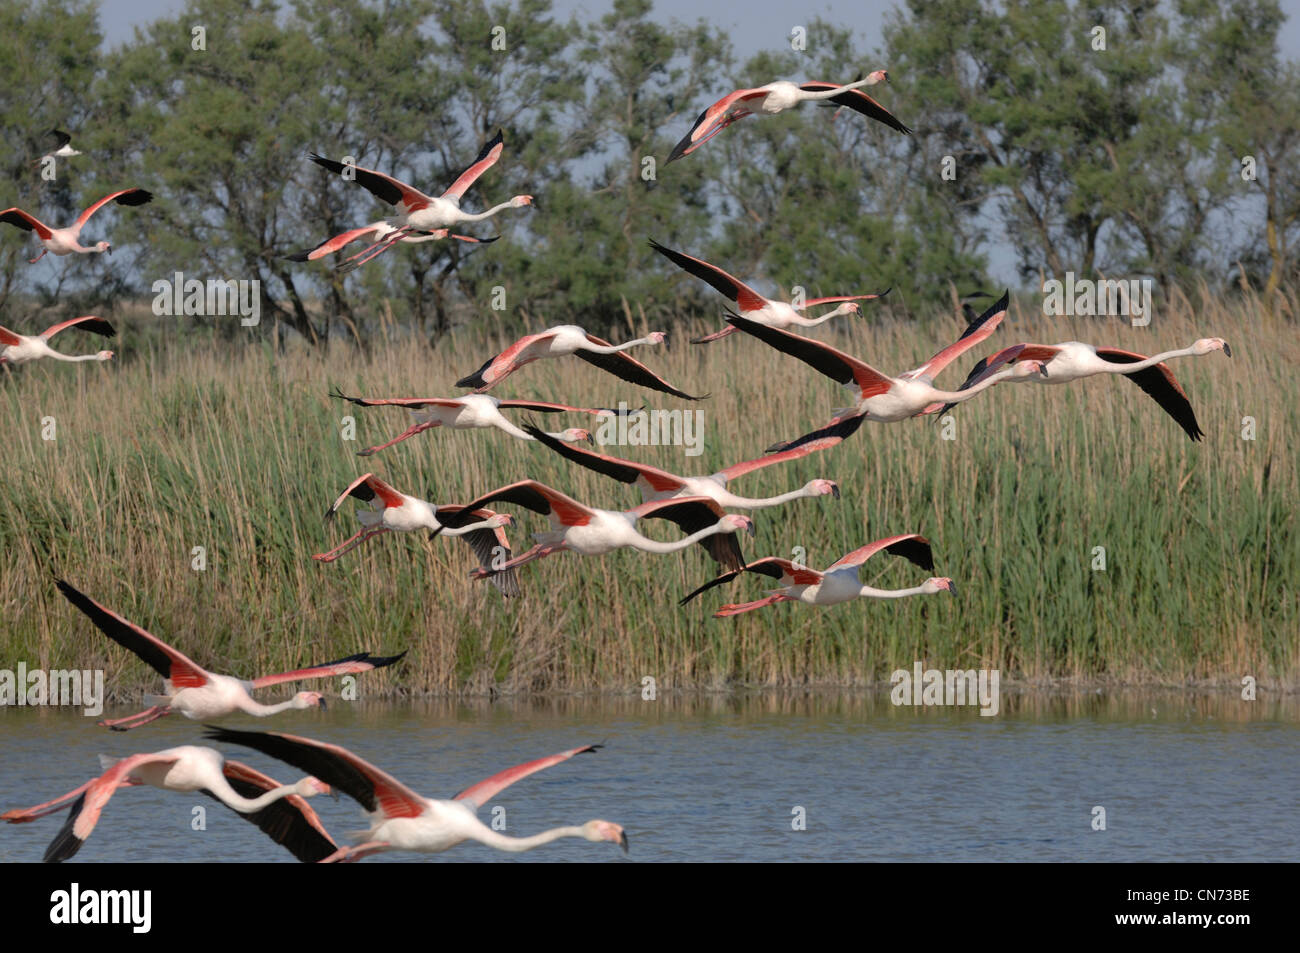 Greater Flamingo Phoenicopterus ruber In flight Photographed in the Camargue, France - Stock Image